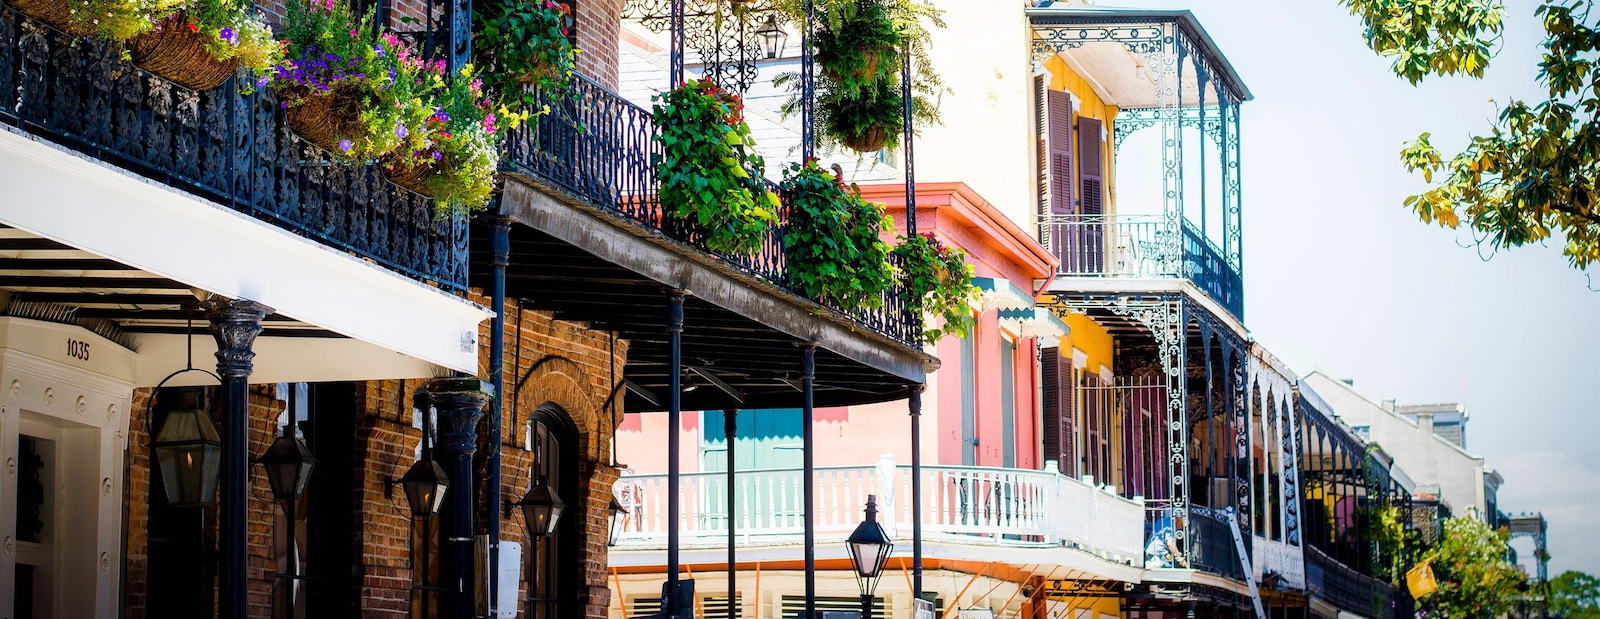 Vacation rentals in French Quarter, New Orleans